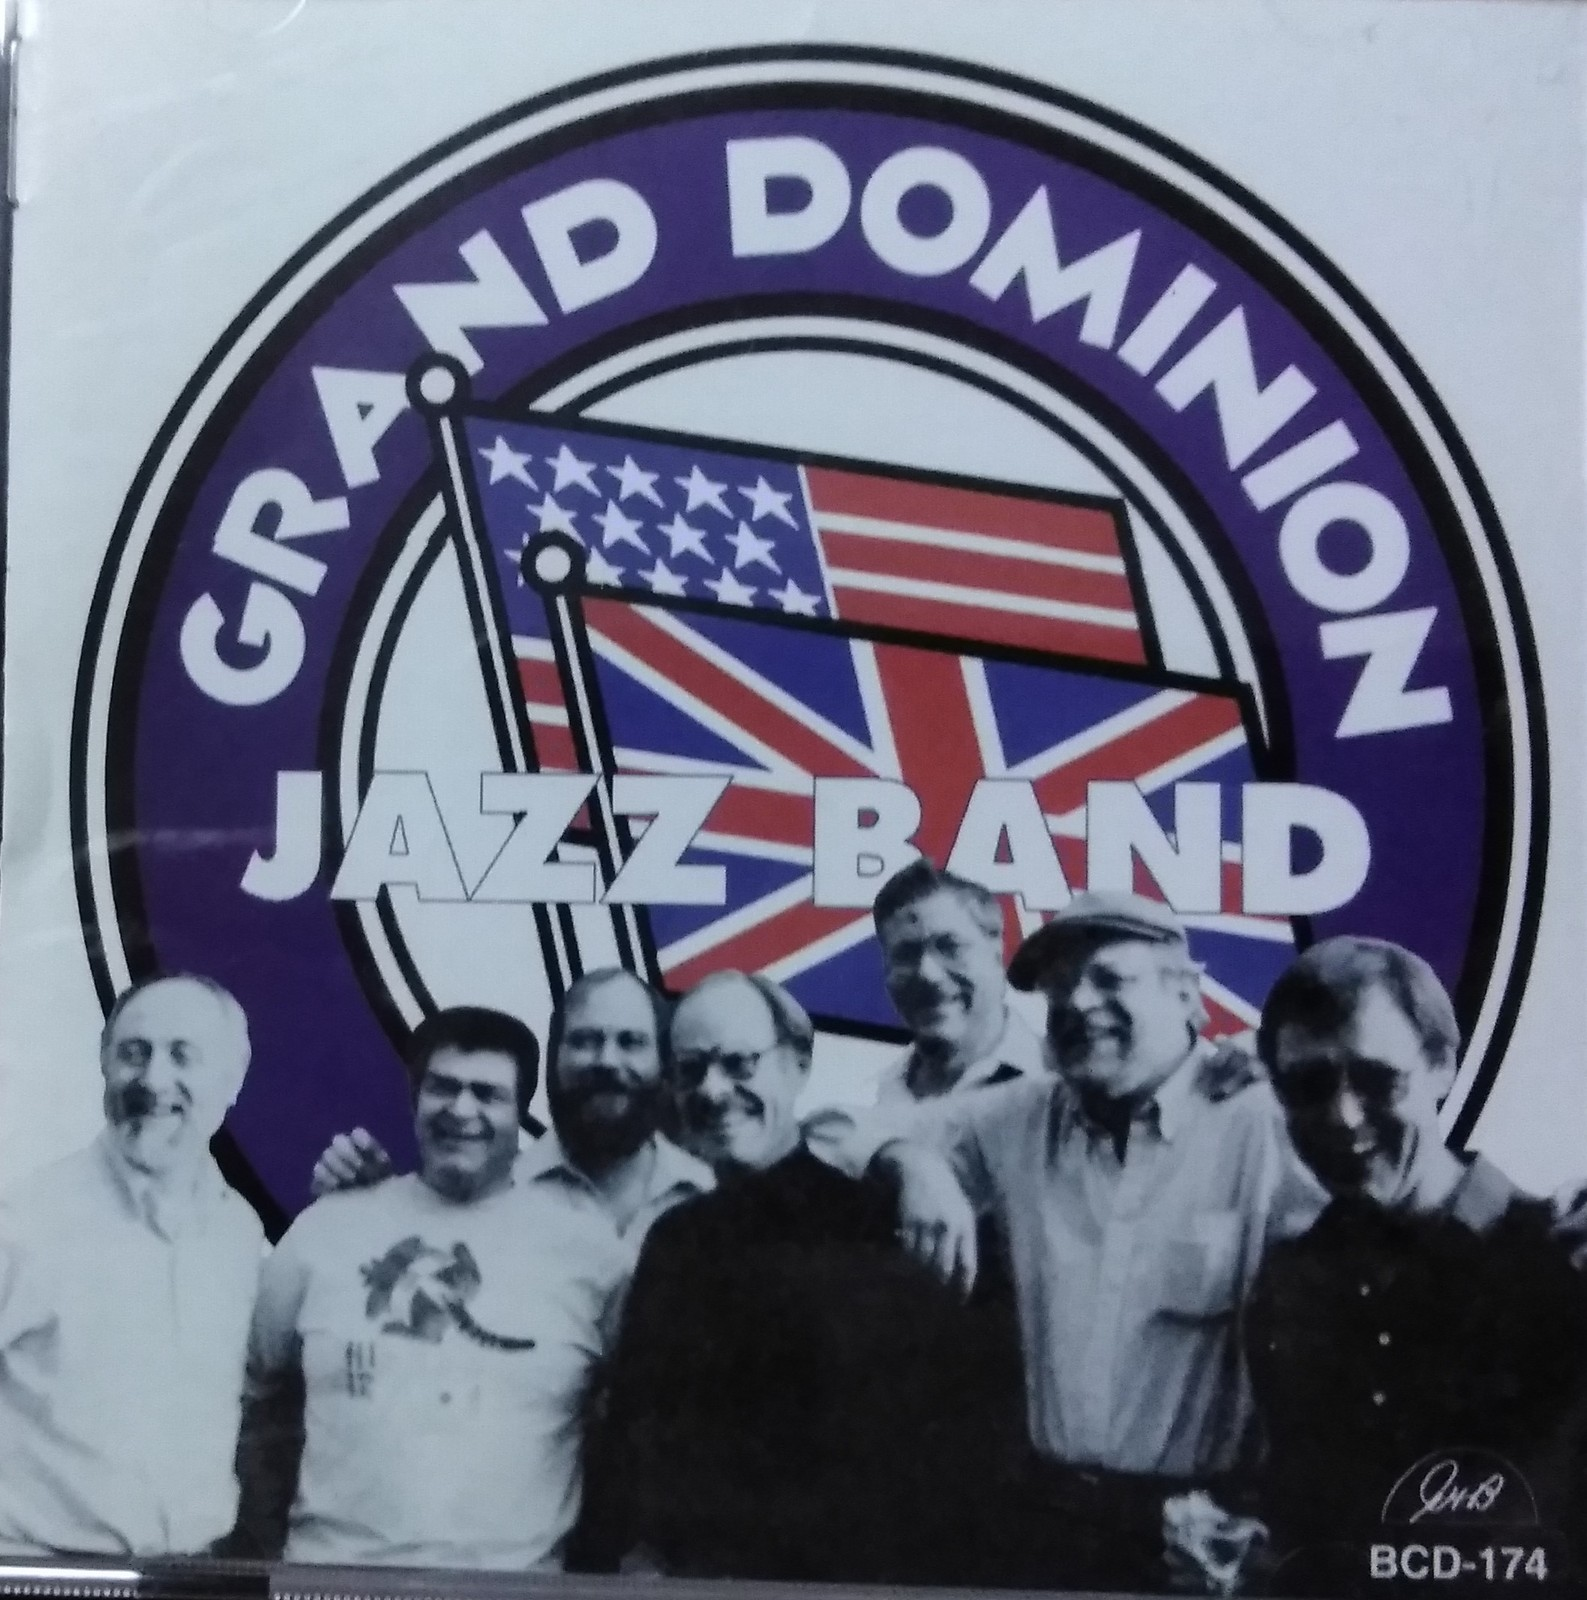 Primary image for Grand Dominion Jazz Band CD   (BX2)